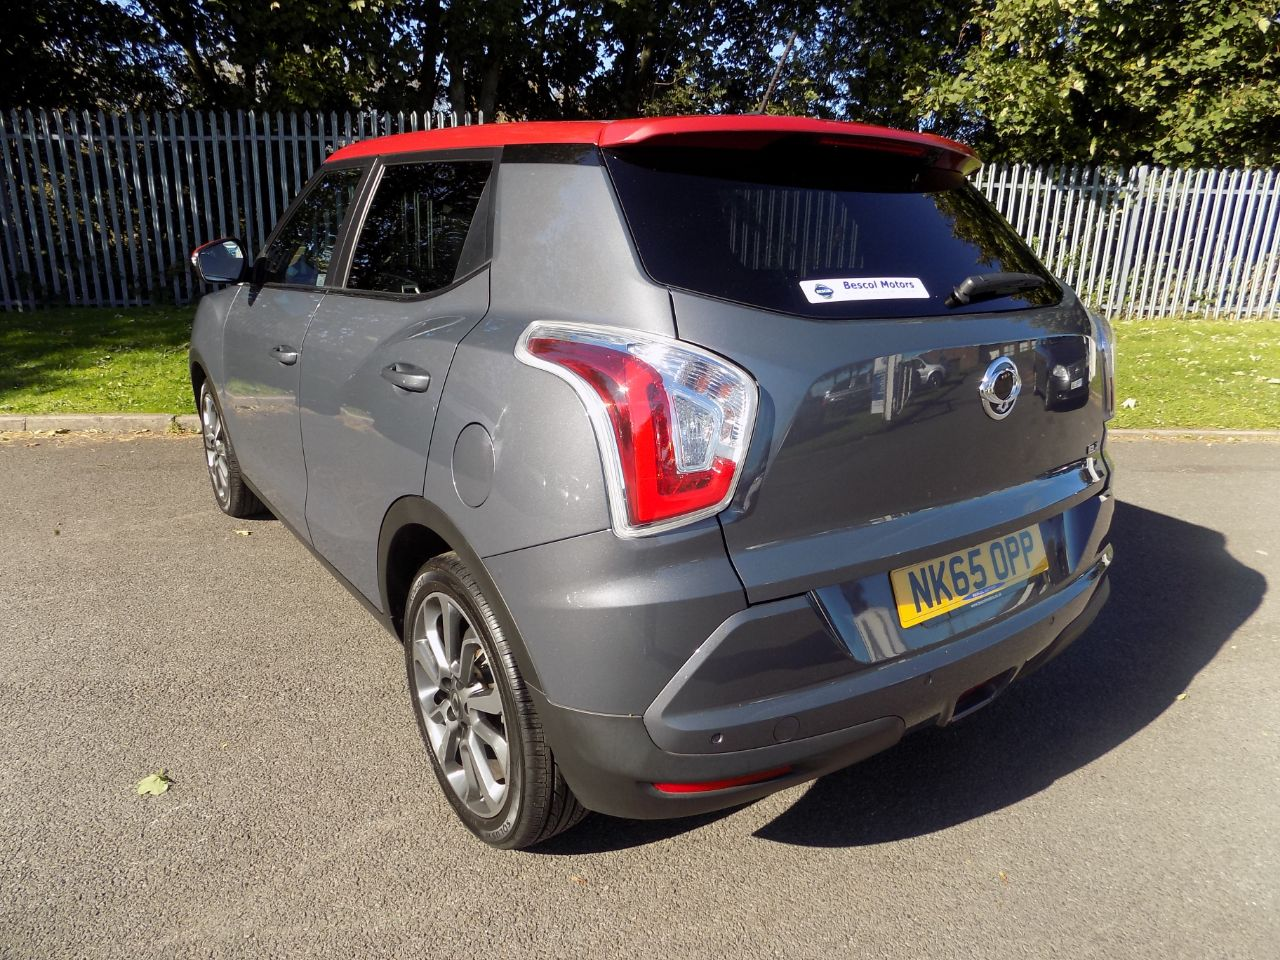 SsangYong Tivoli 1.6 ELX 5dr Hatchback Petrol Techno Grey With Red Roof